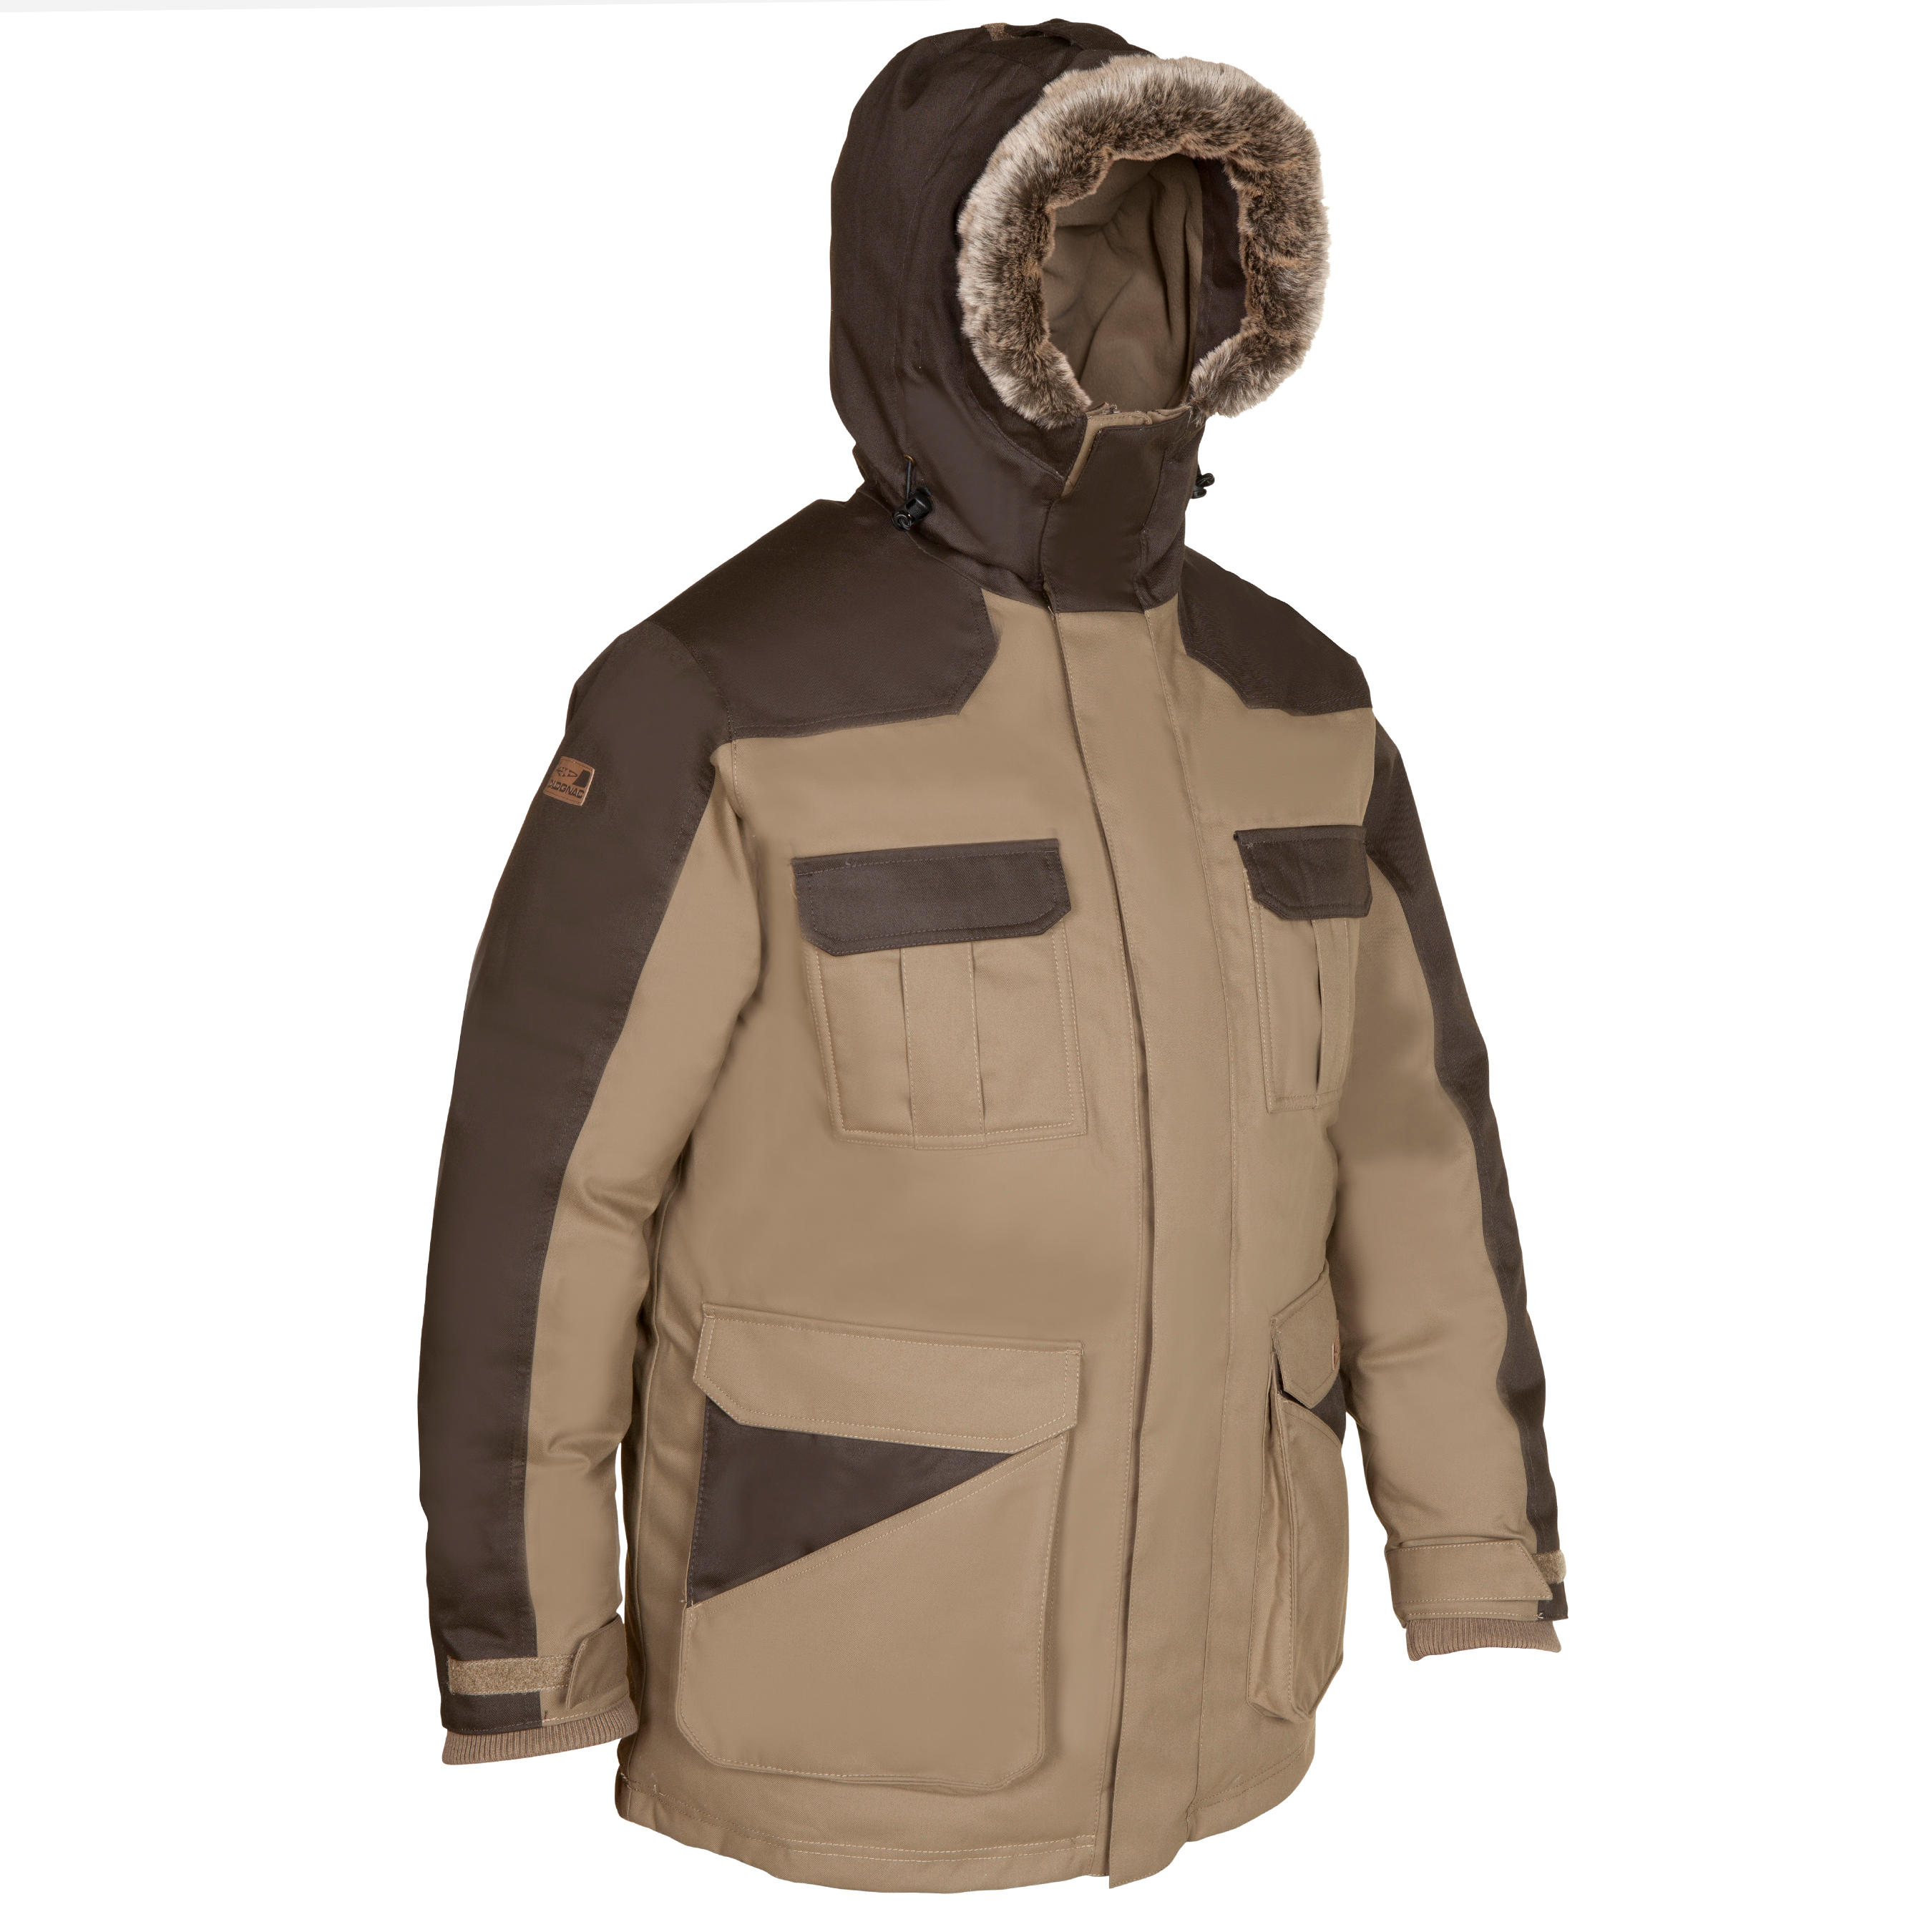 Toundra 300 Extreme Cold Hunting Parka - Brown